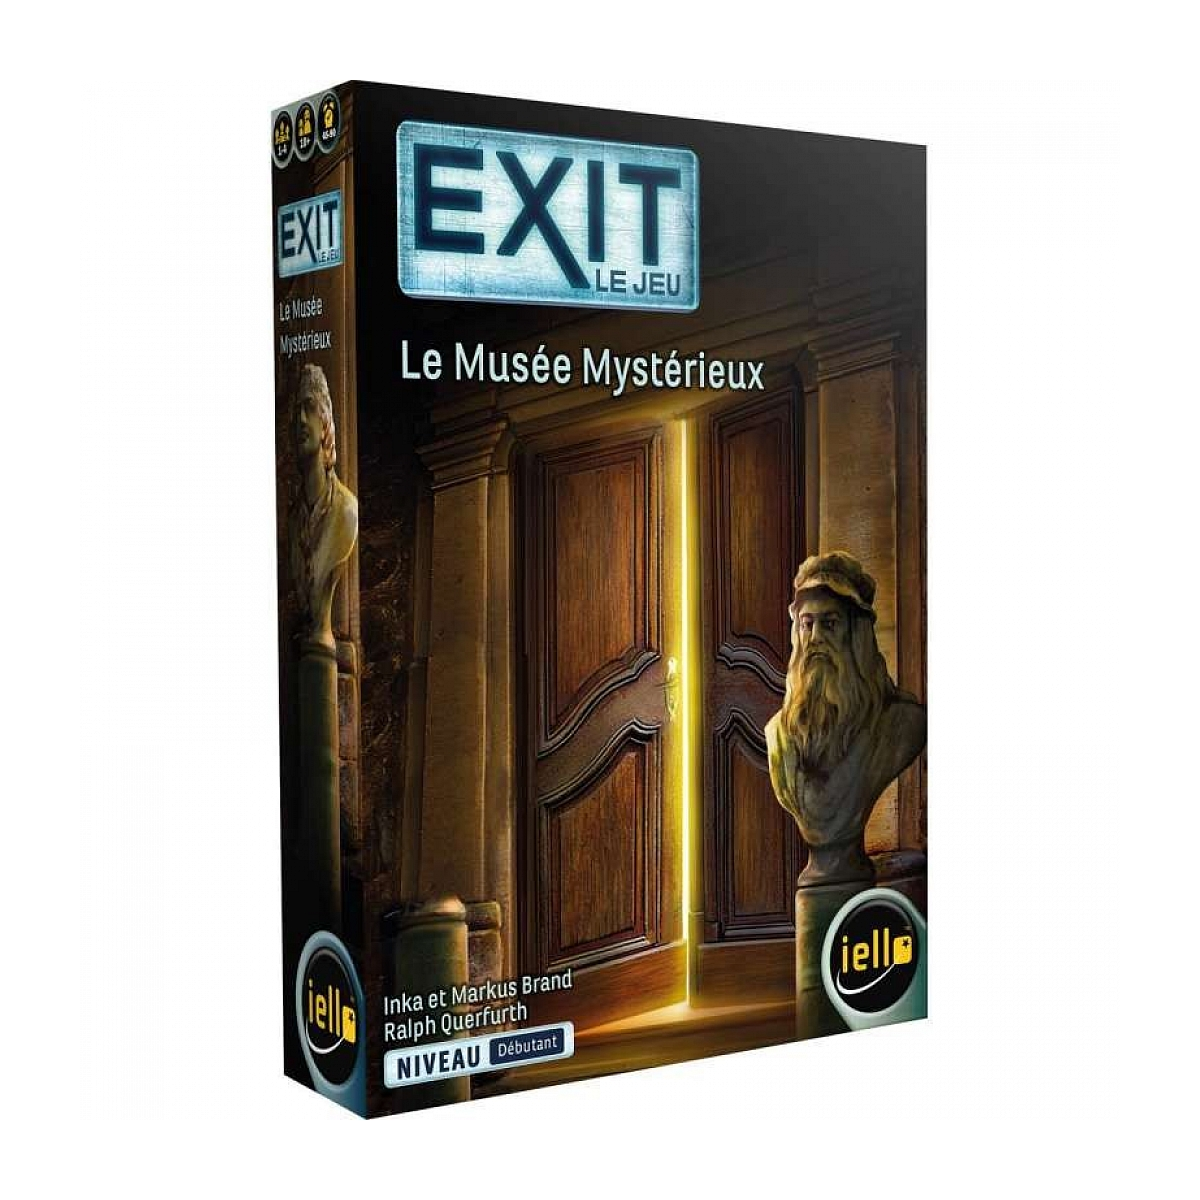 Iello - Exit le musee mysterieux